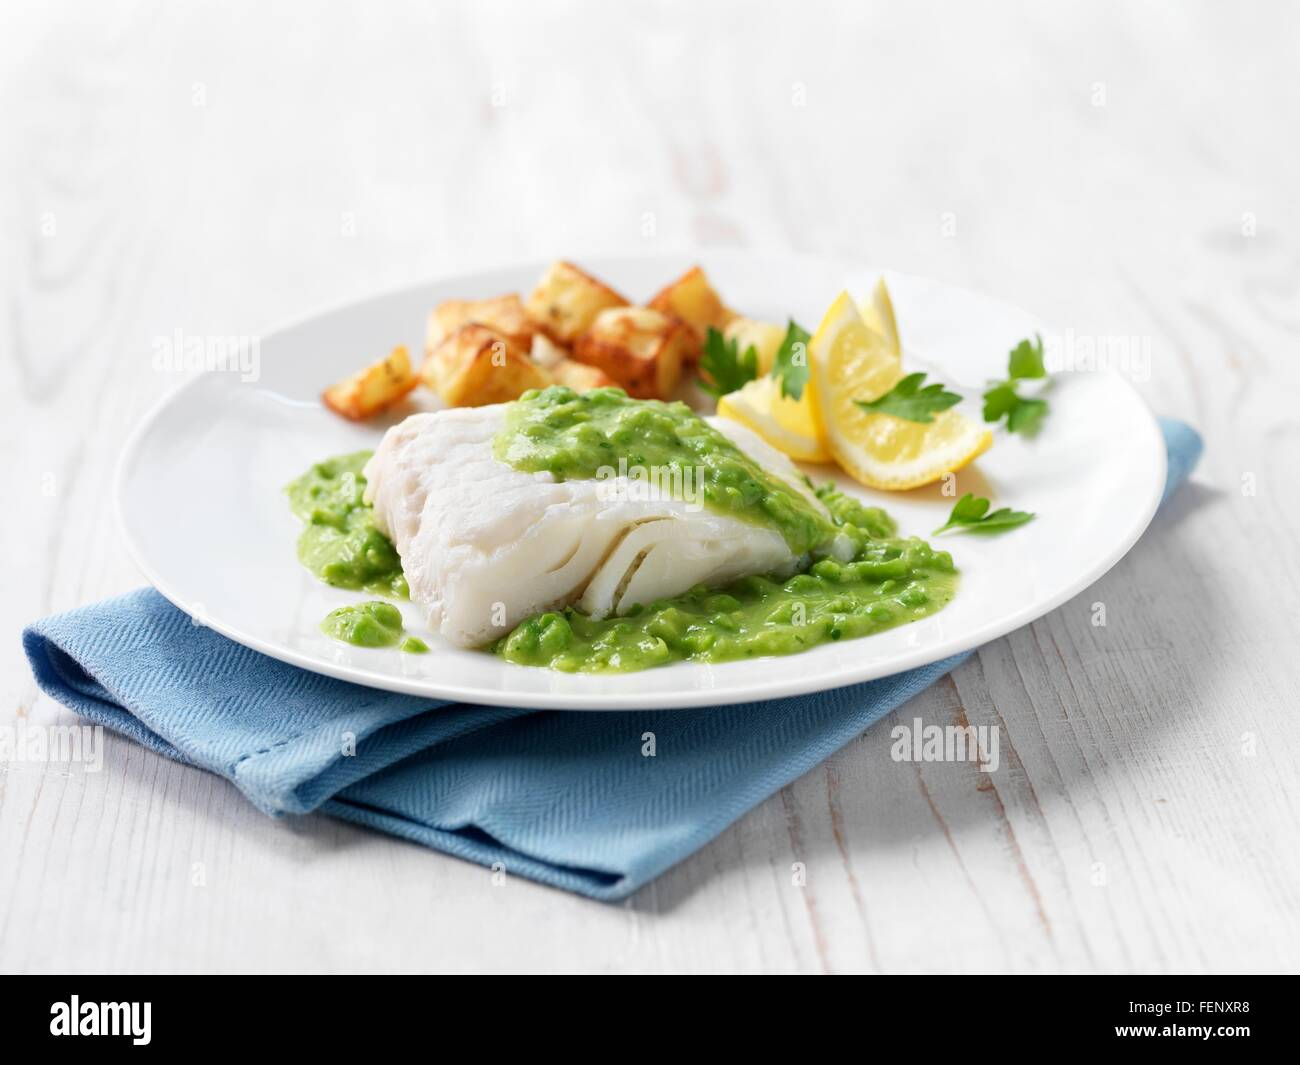 Haddock Fillet | Haddock Fillet With Fried Potatoes Minted Pea Sauce And Lemon